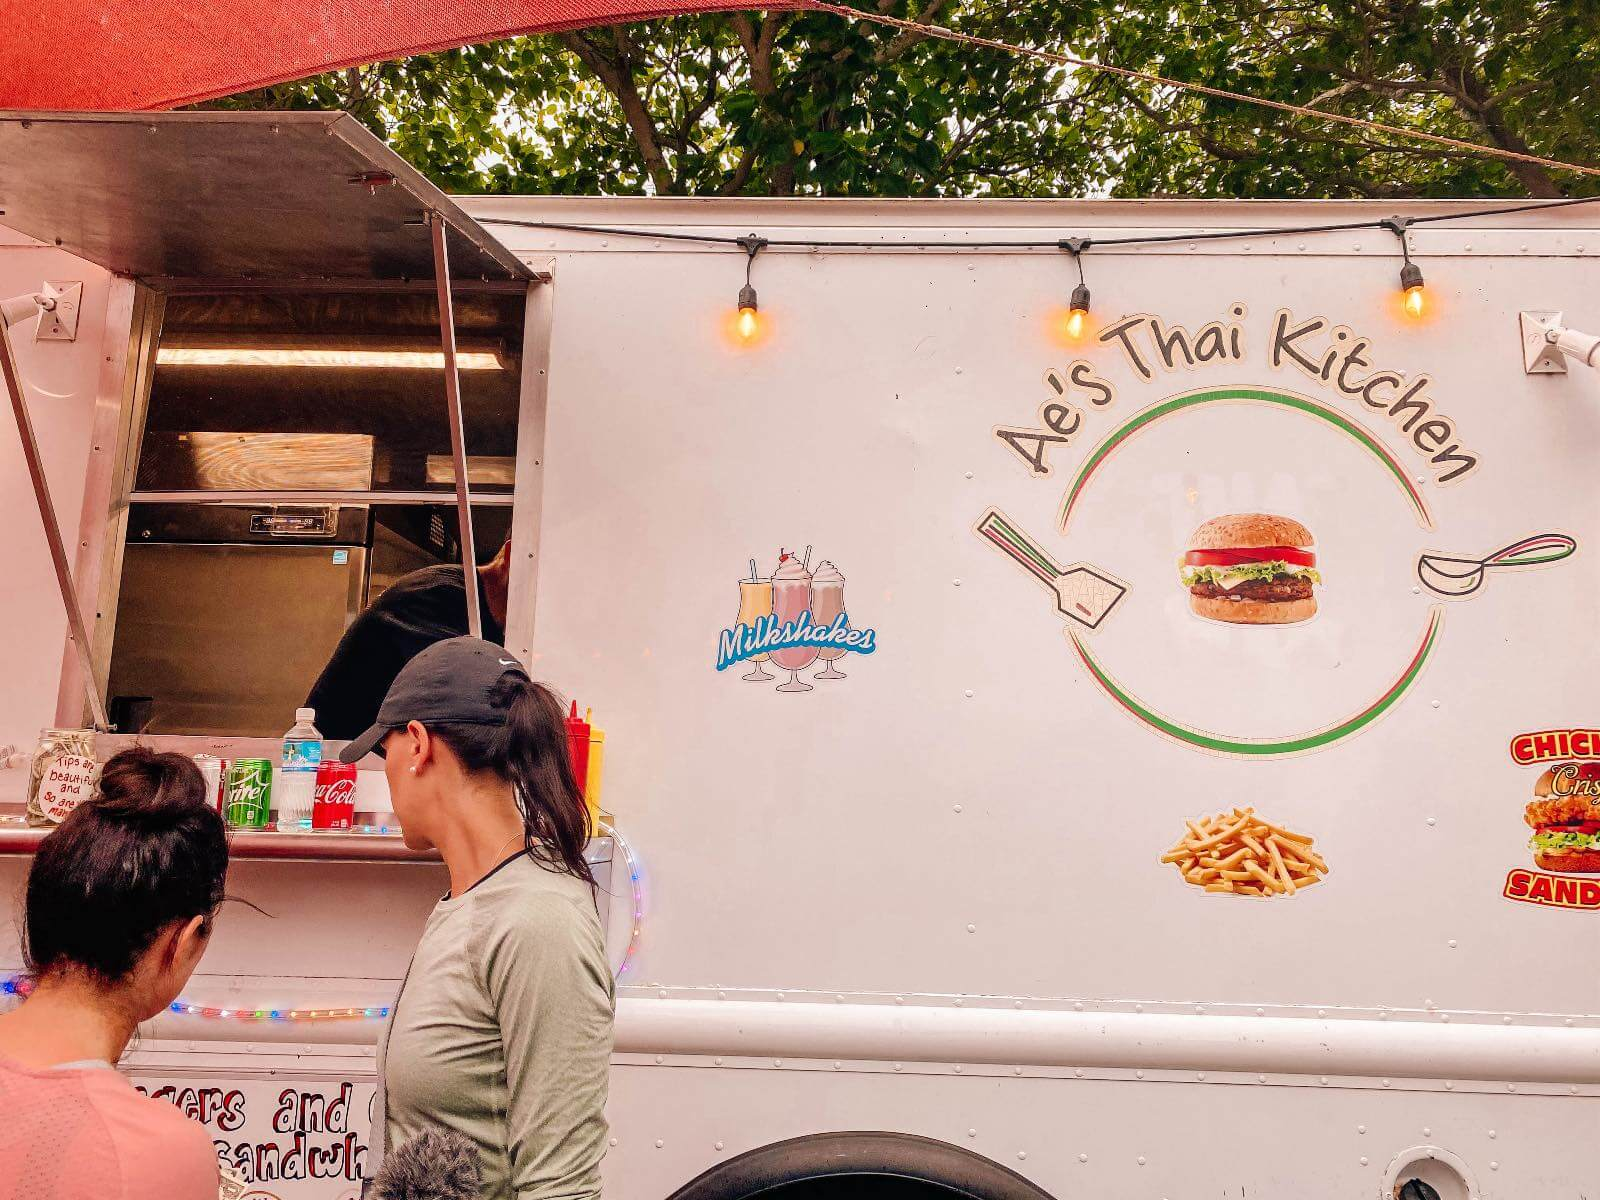 Ae's Thai Kitchen food truck